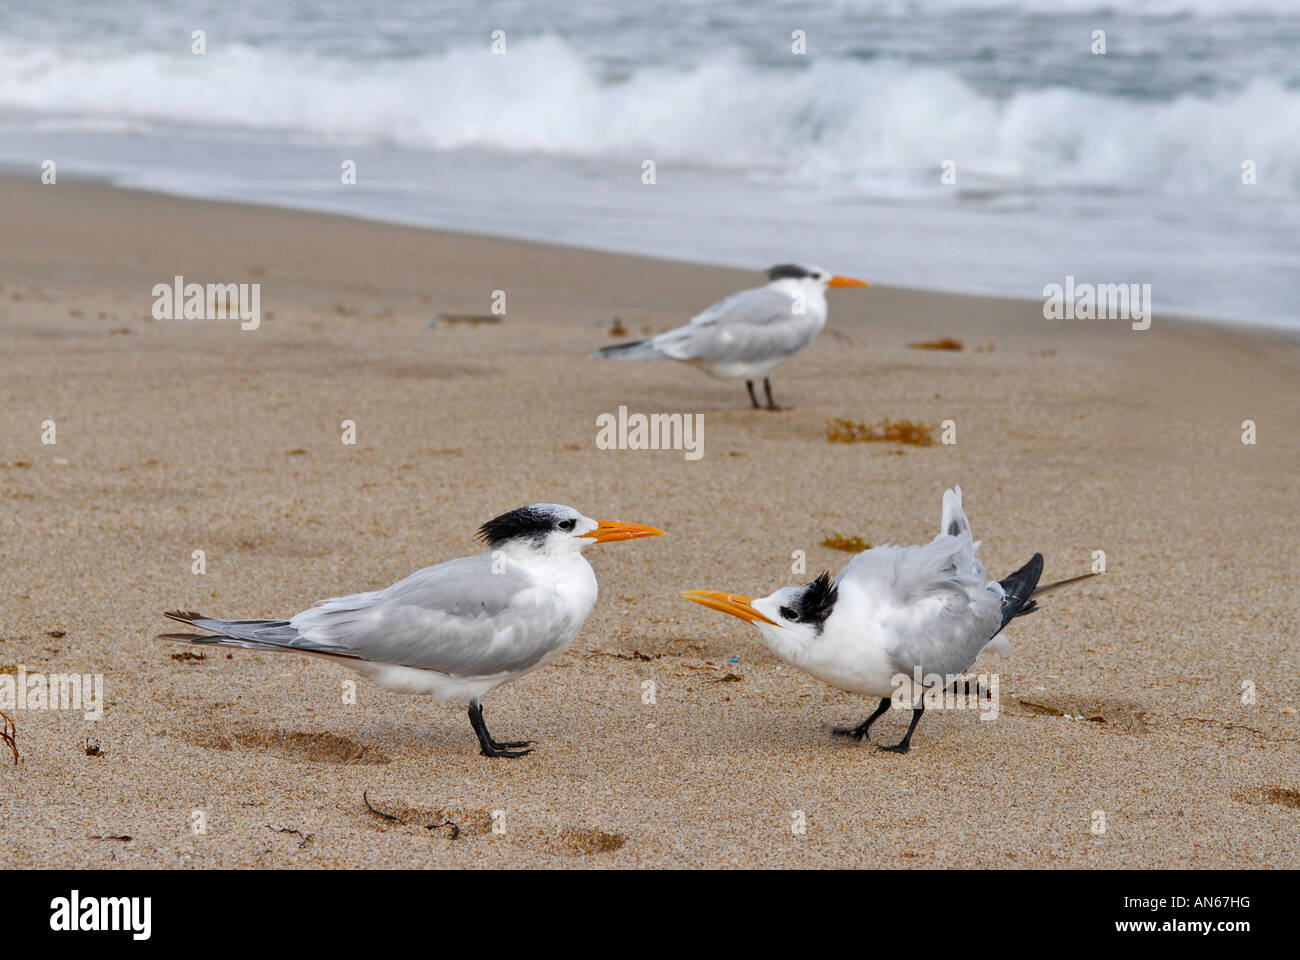 Two royal terns frolicking on the beach - Stock Image